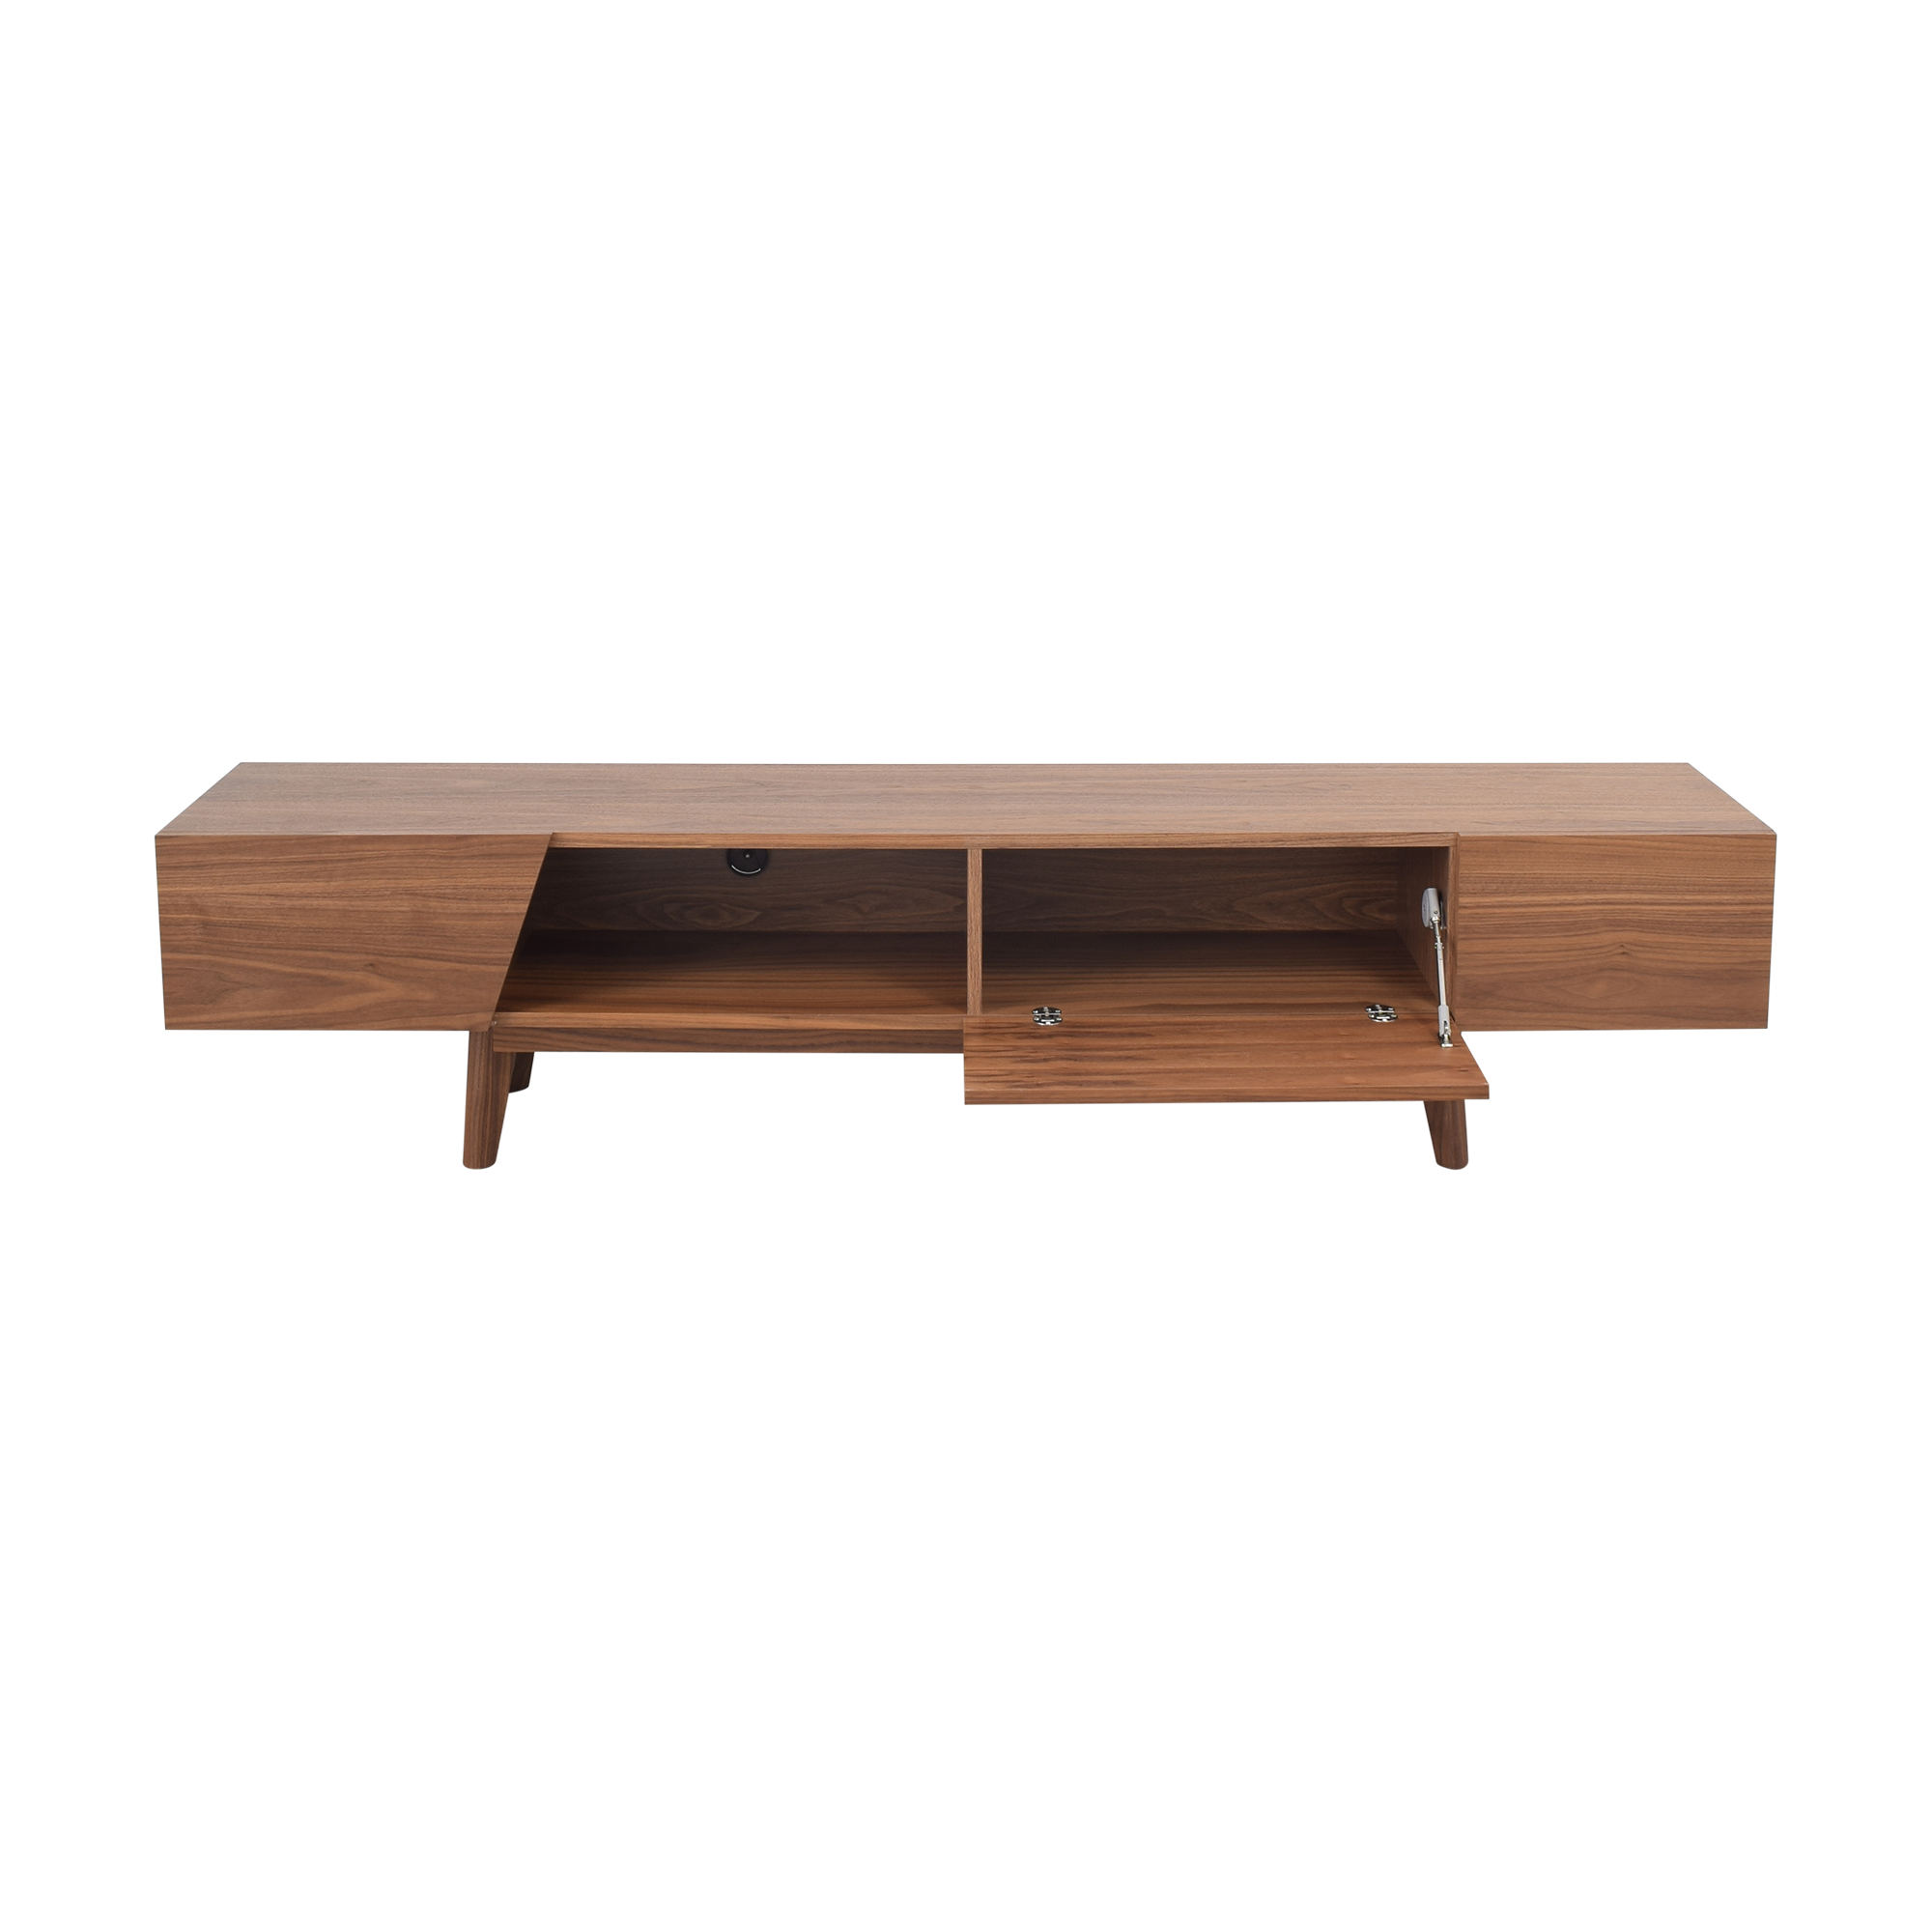 Modani Modani Cama TV Stand Walnut nj